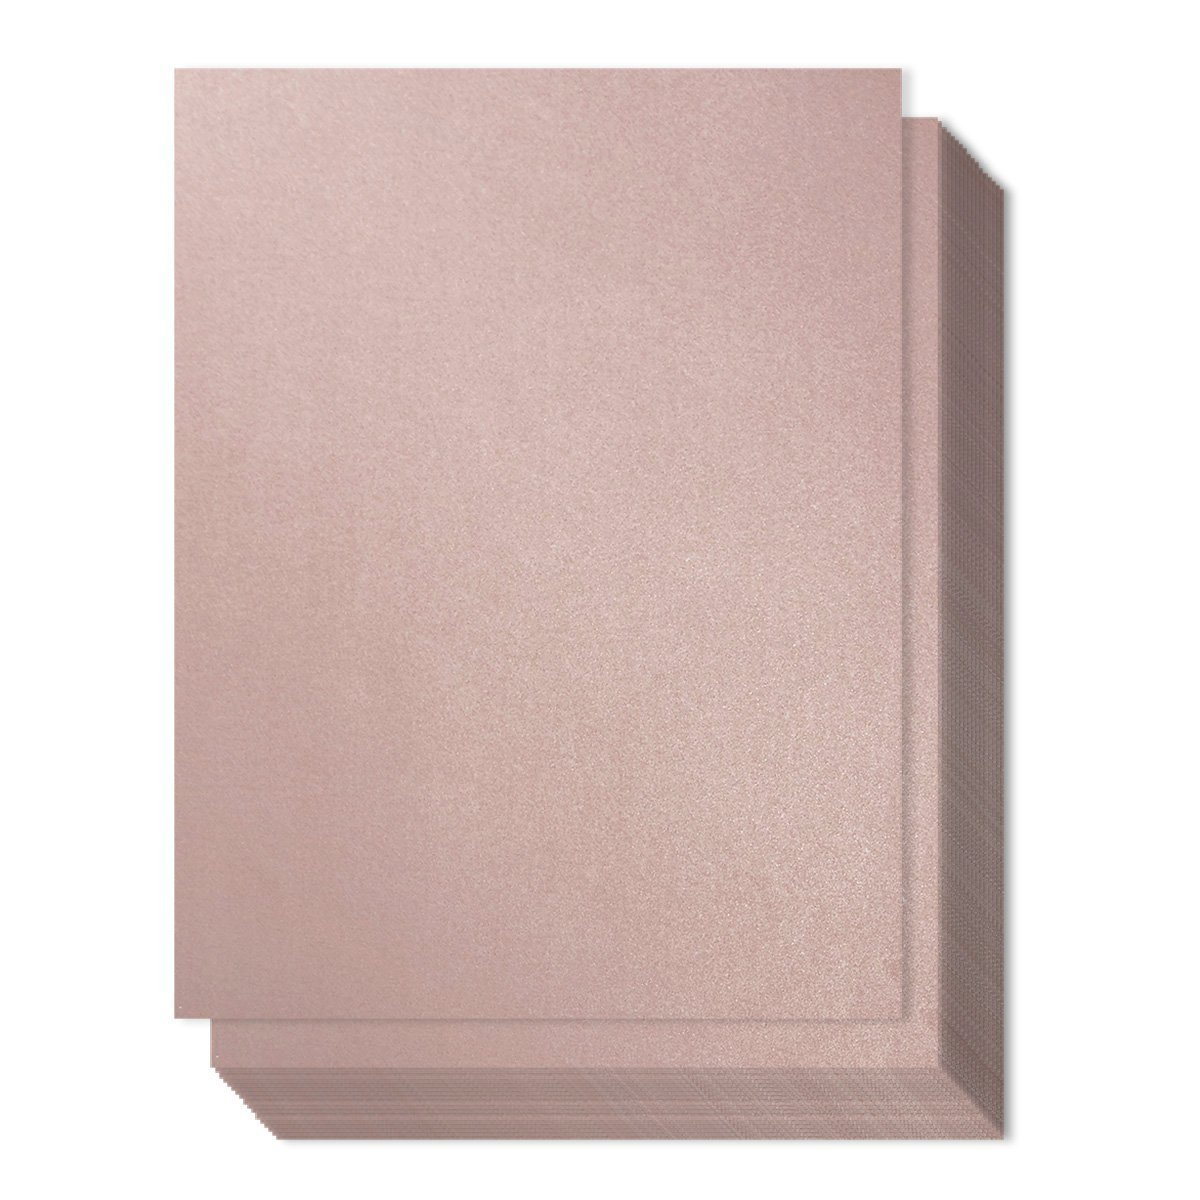 96 Count Metallic Mauve Stationery Paper/Invitation Paper for Writing, Scrapbooking, Letters, Certificates, Crafts, 8.5 x 11 Inches